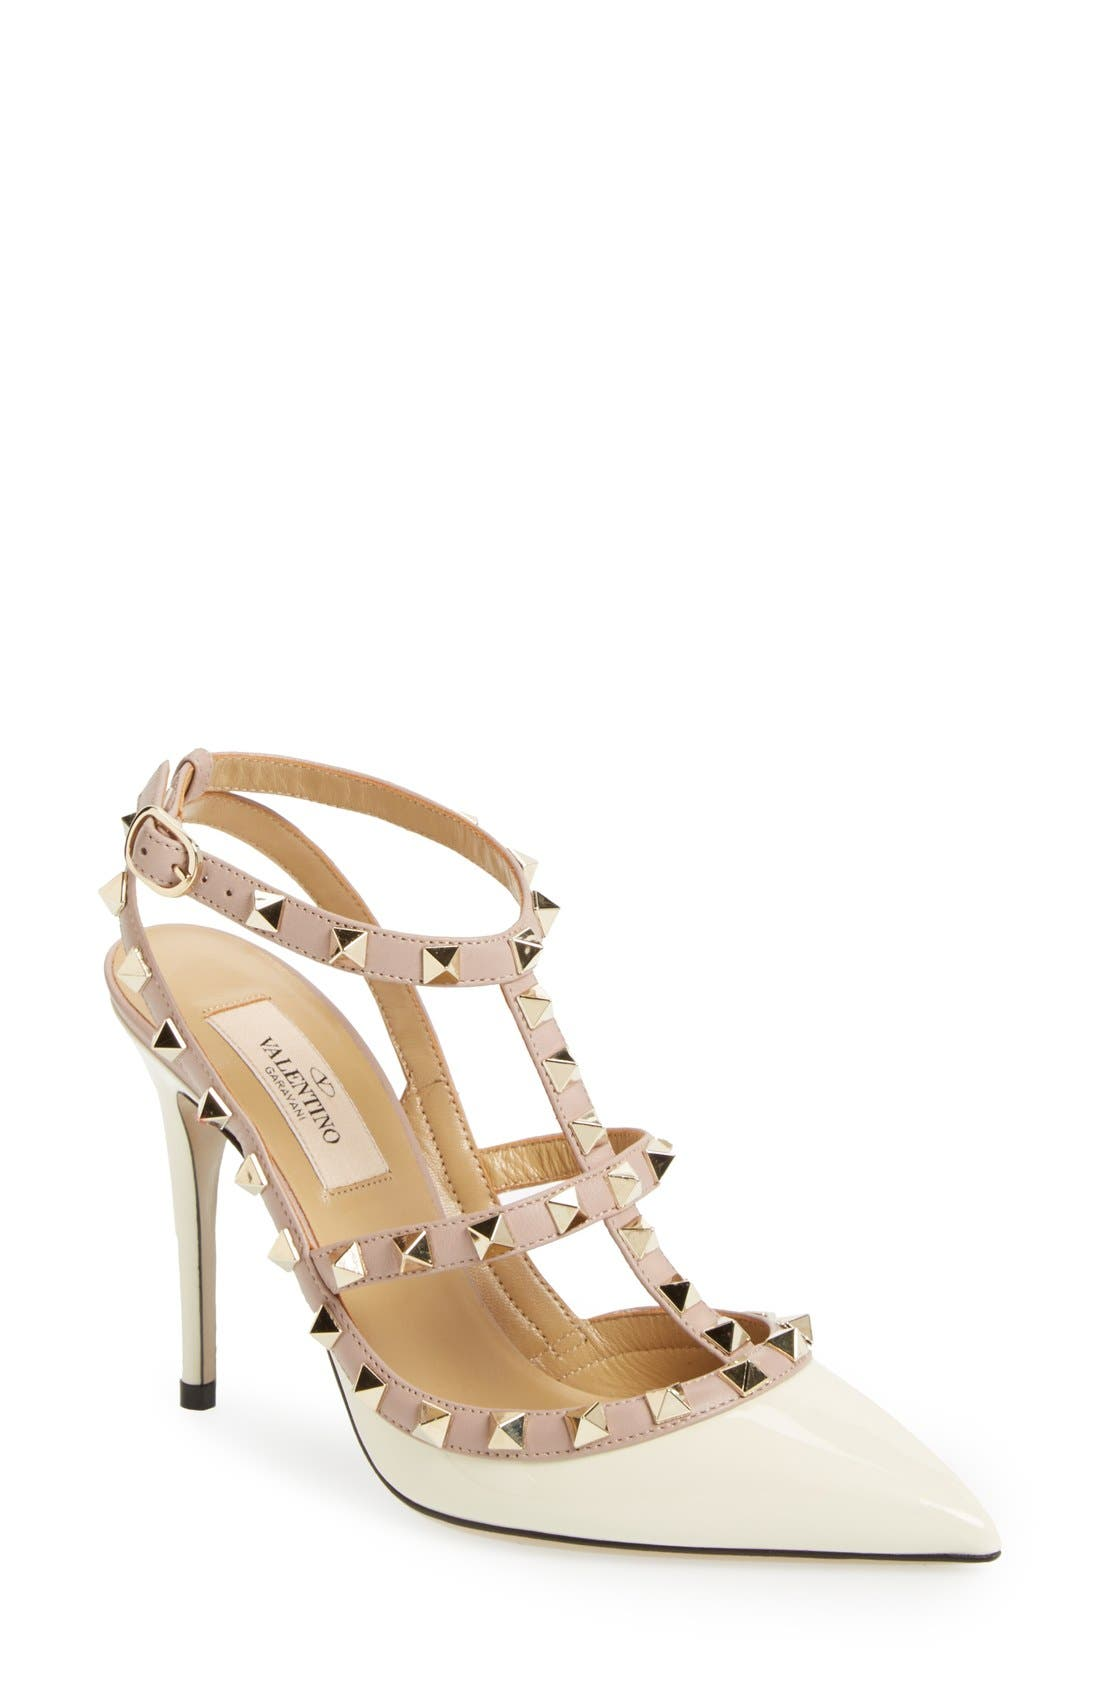 Alternate Image 1 Selected - Valentino Rockstud T-Strap Pump (Women)